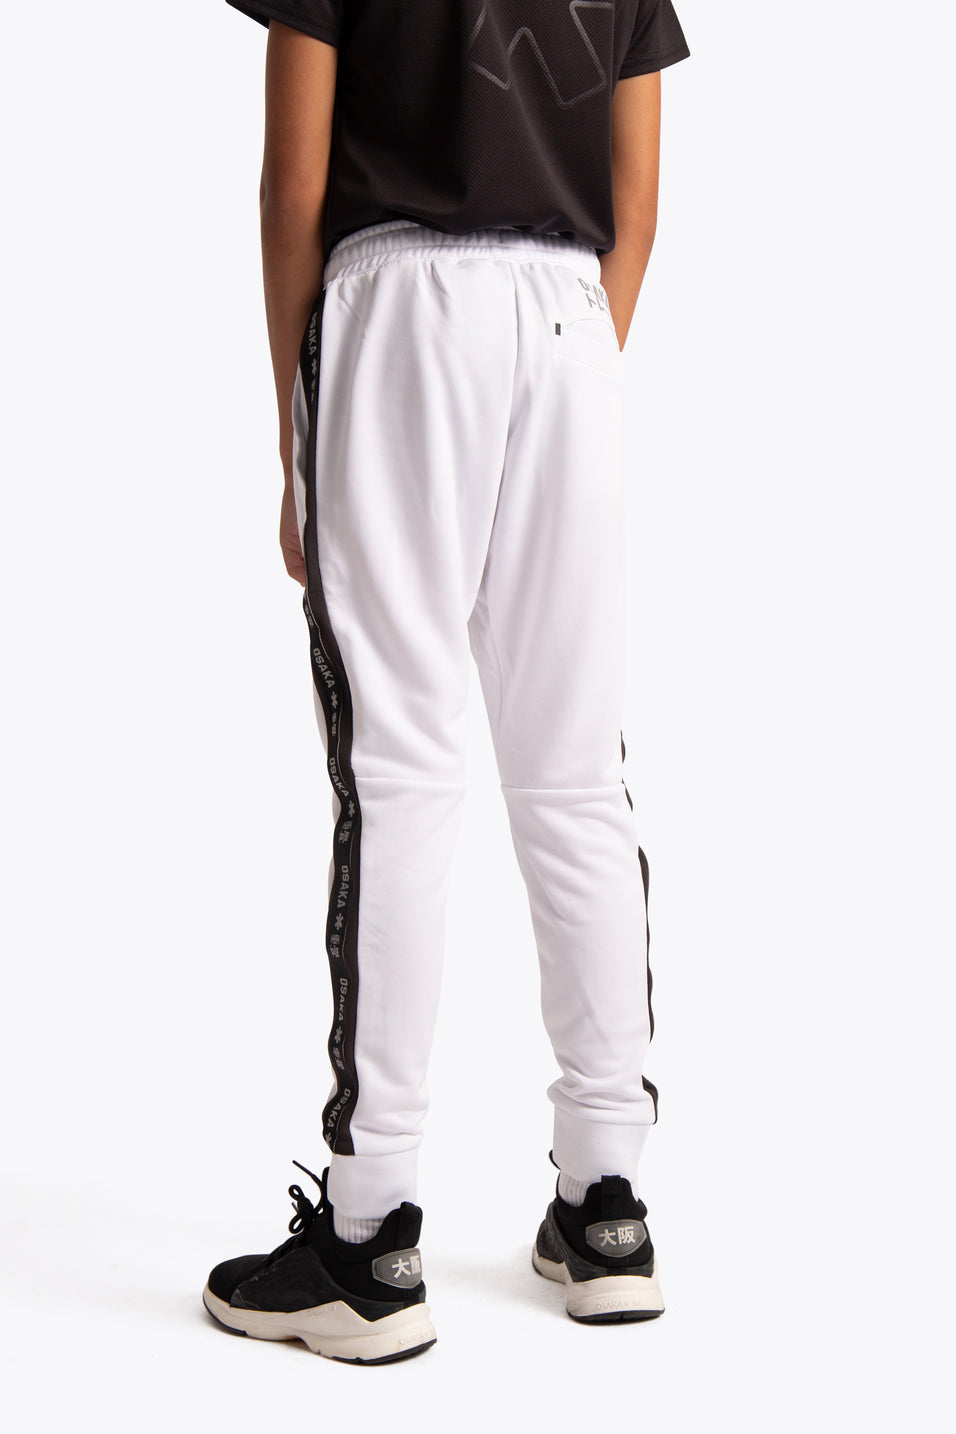 sweatpant kids white